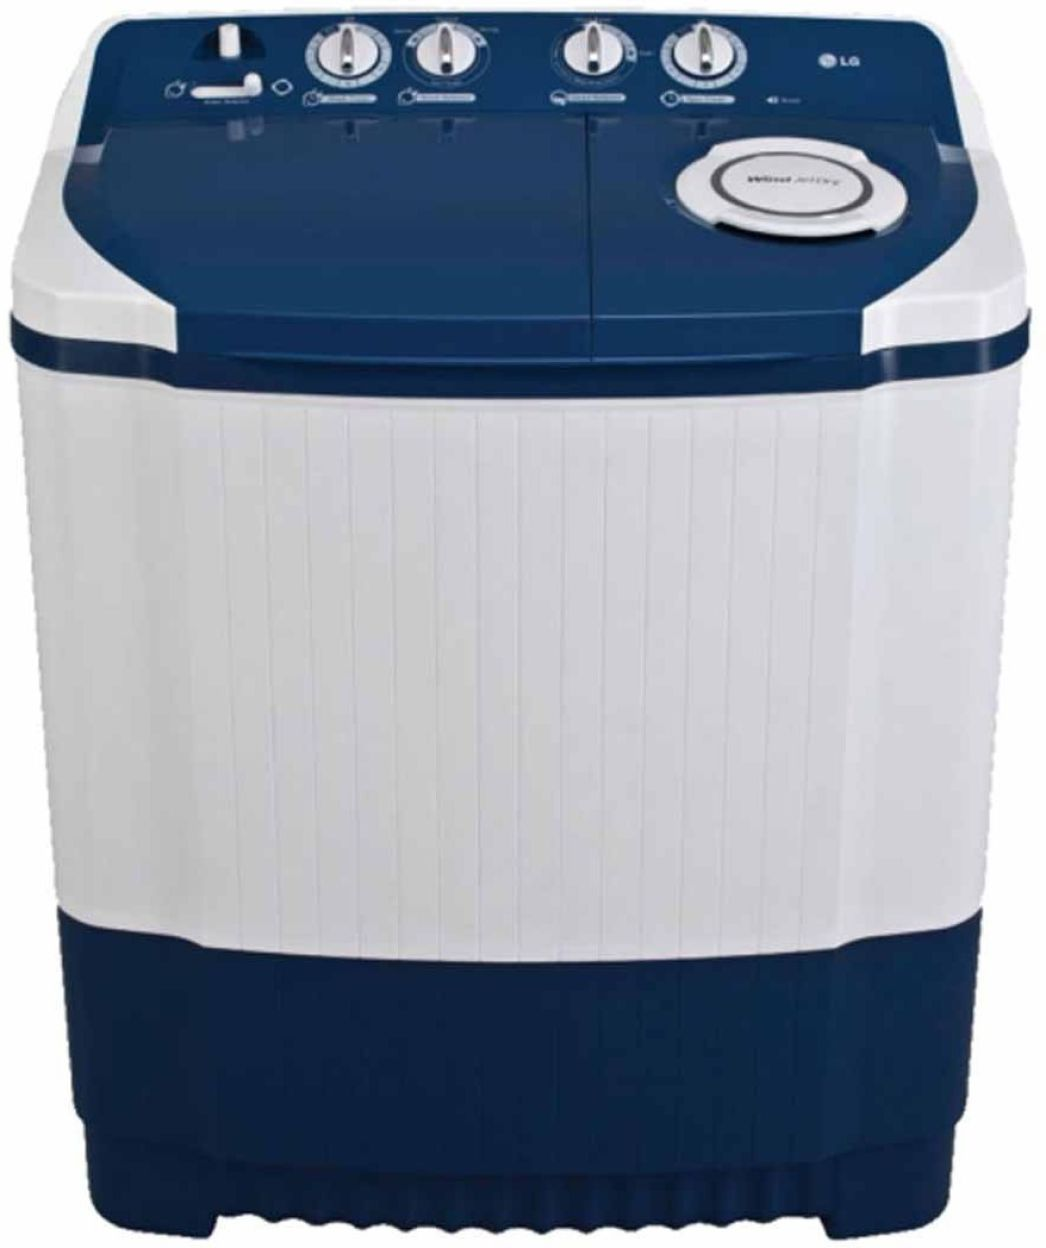 LG 7 Kg Semi Automatic Washing Machine (P8071N3FA)